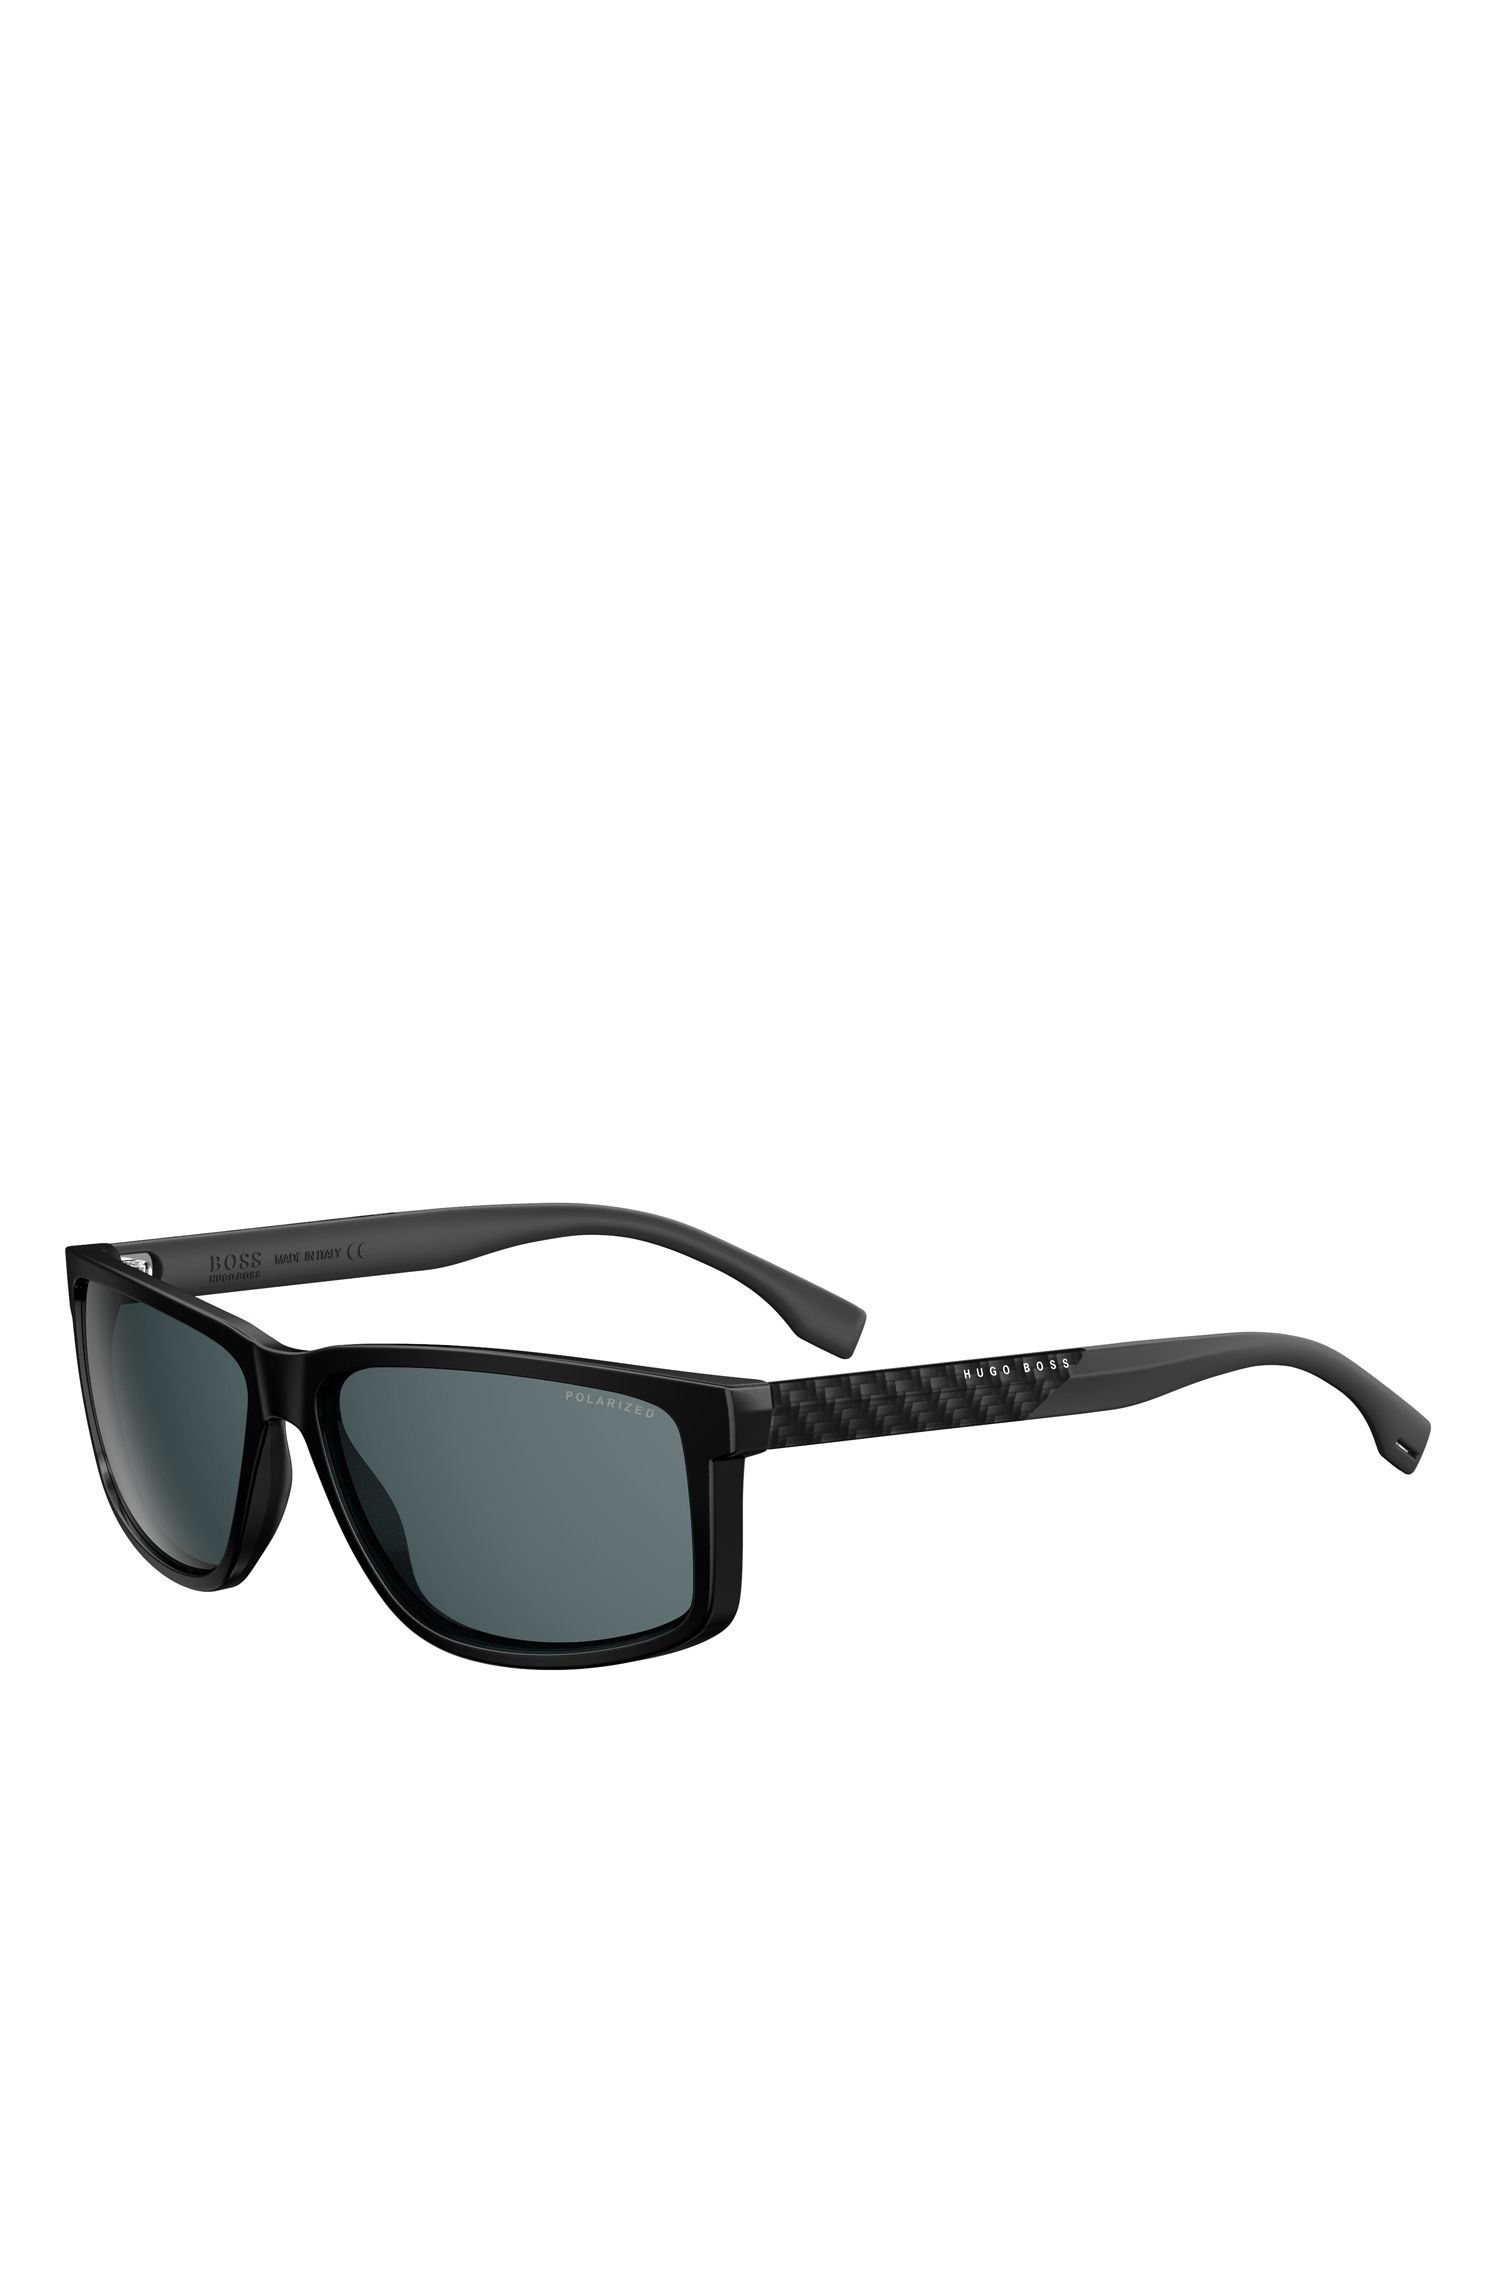 Dark Grey Carbon Fiber Rectangular Sunglasses | BOSS 0879